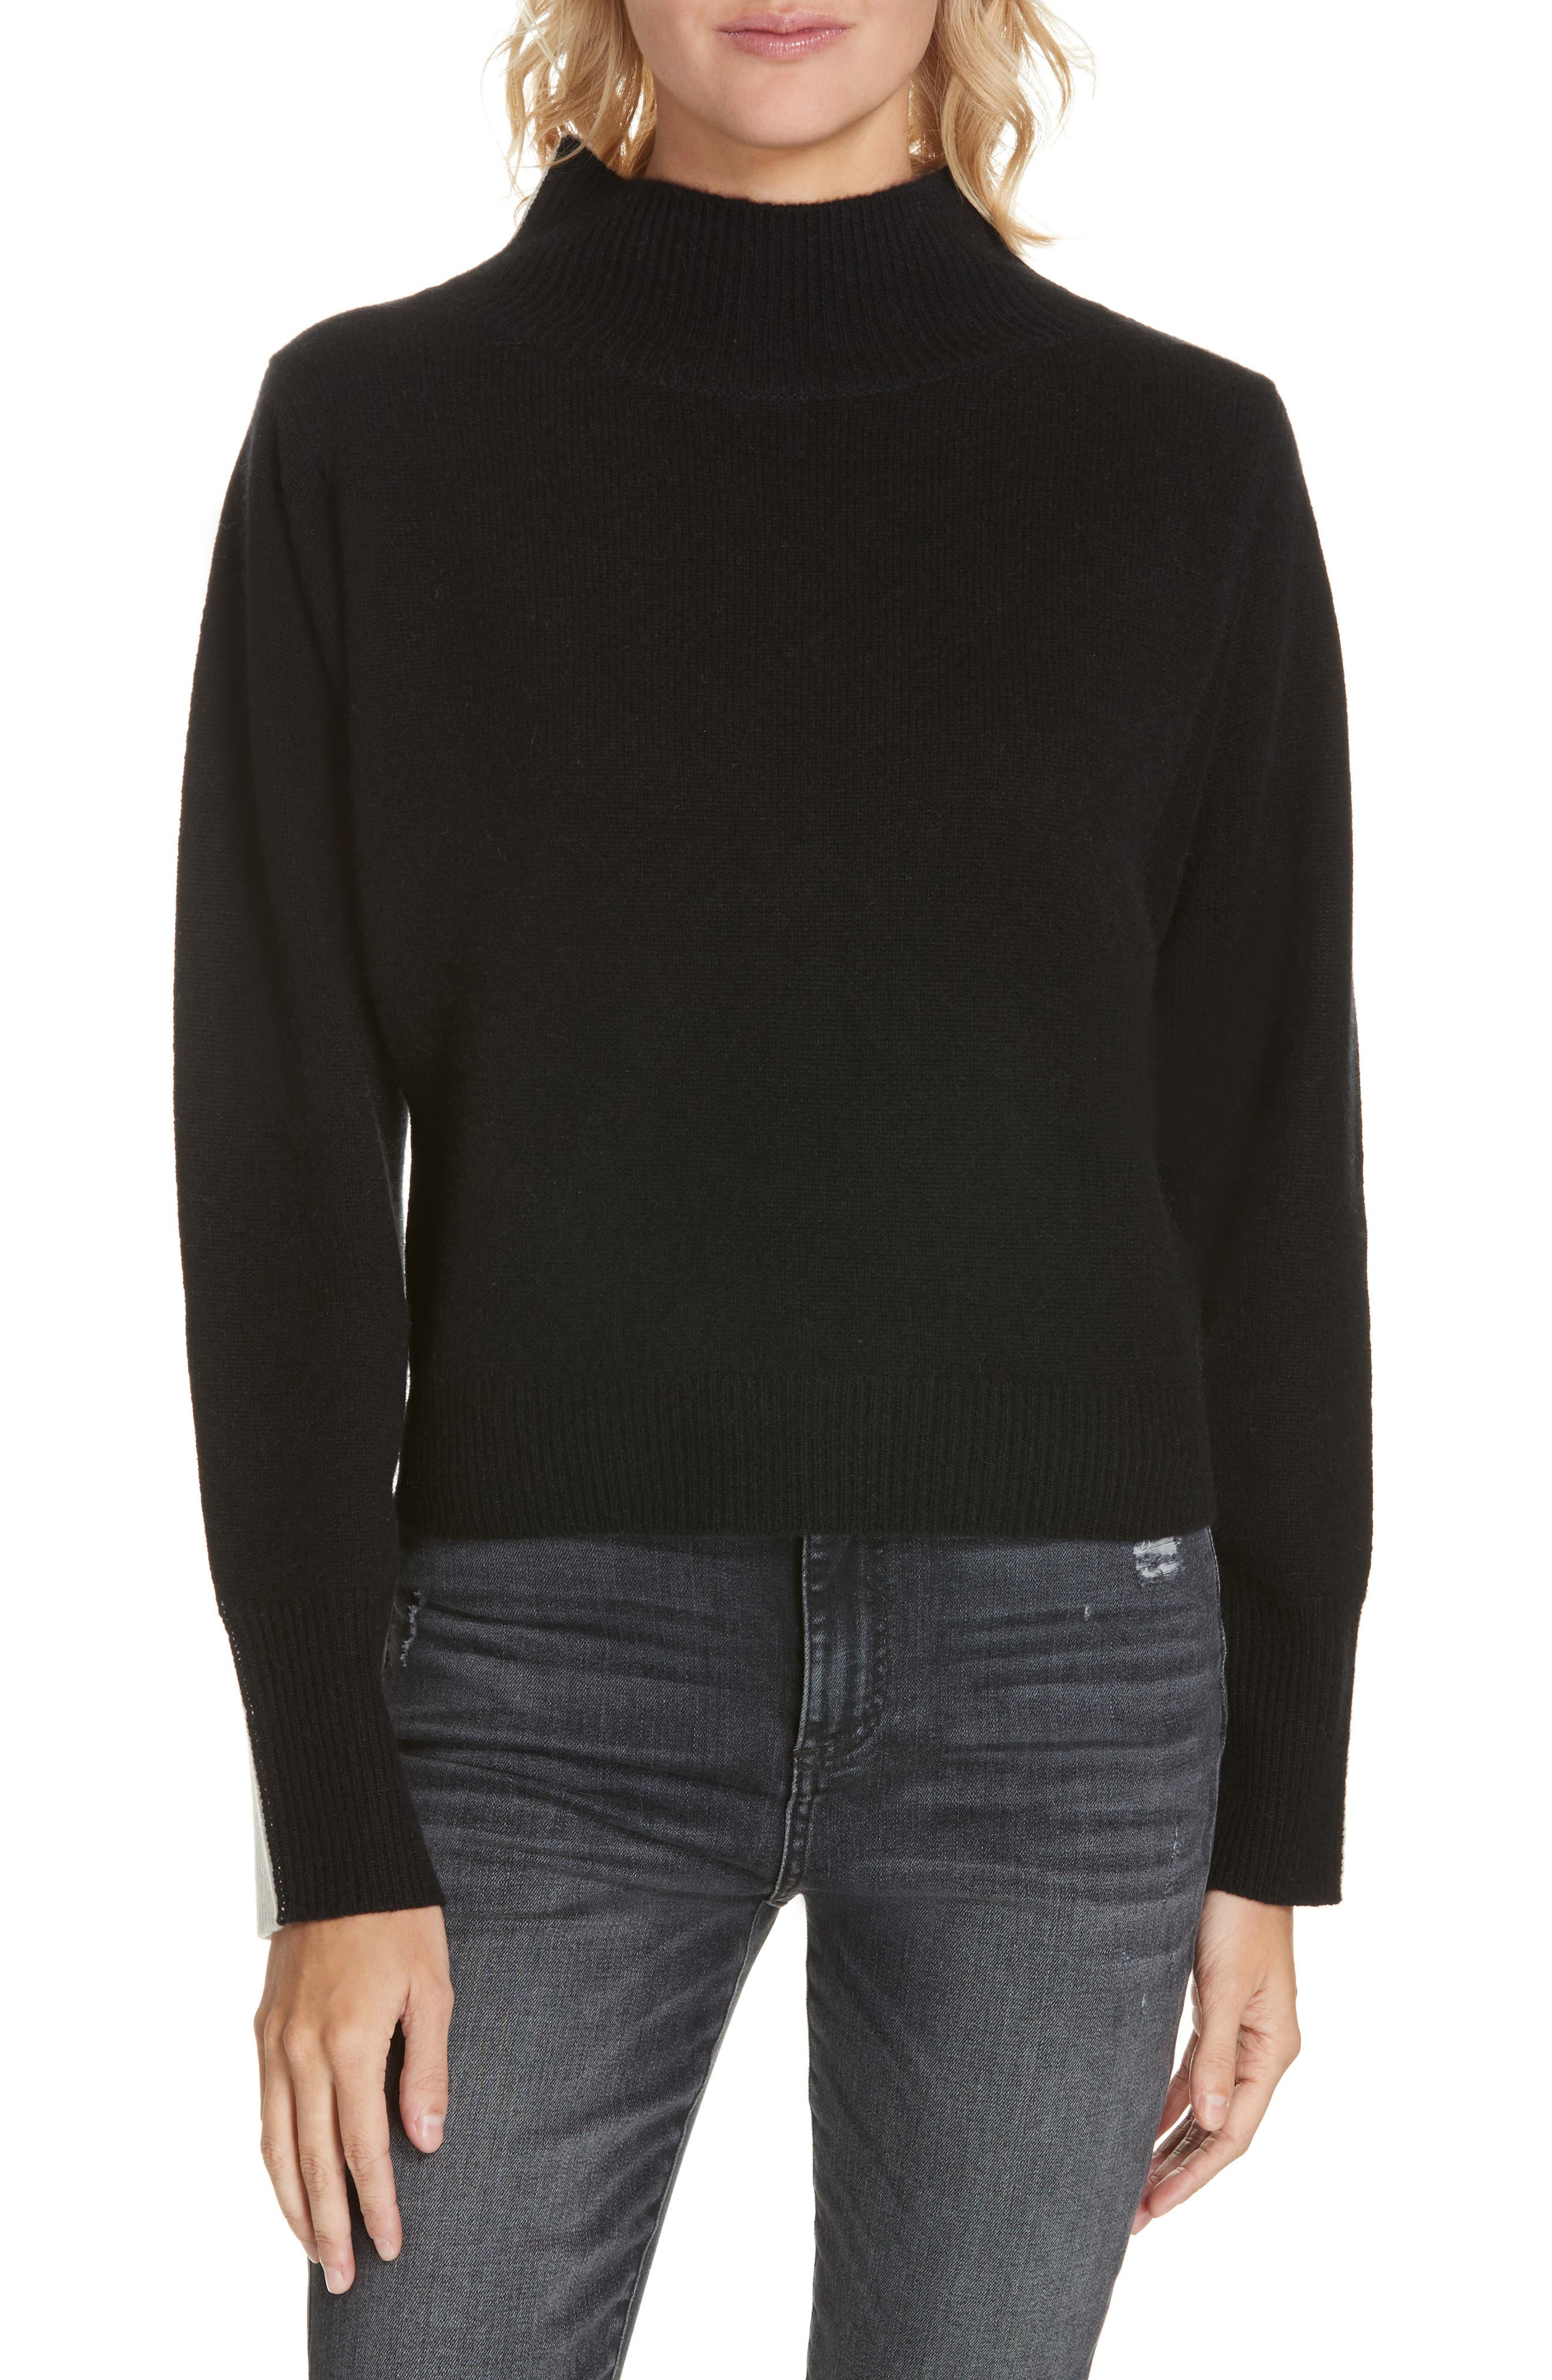 NORDSTROM SIGNATURE Colorblock Cashmere Sweater, Main, color, BLACK- IVORY COMBO